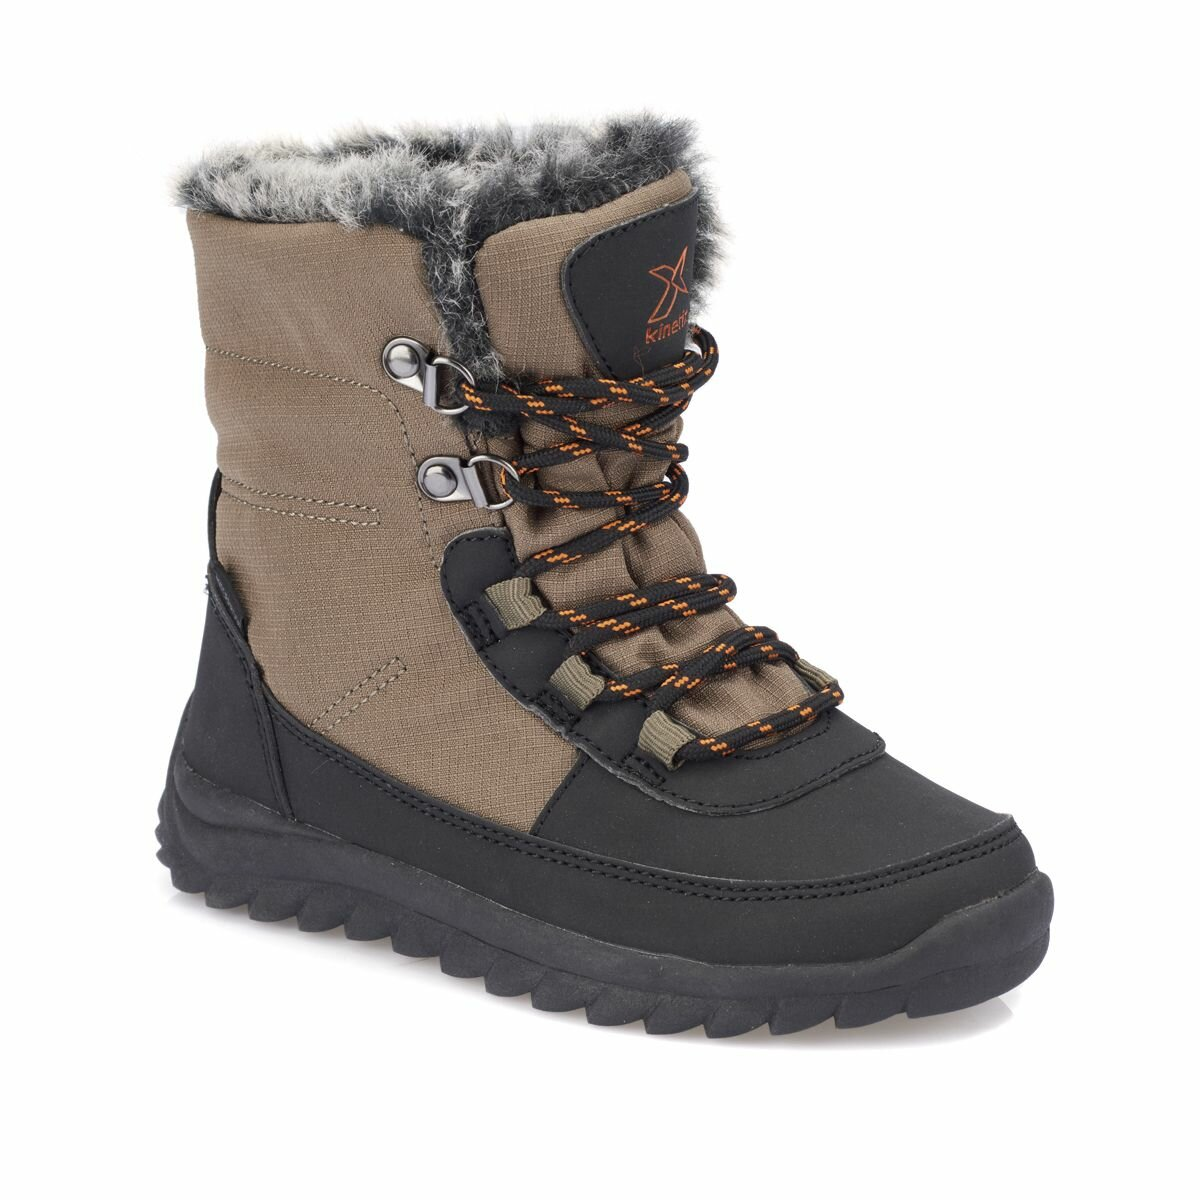 FLO RALF WP Khaki Male Child Boots KINETIX